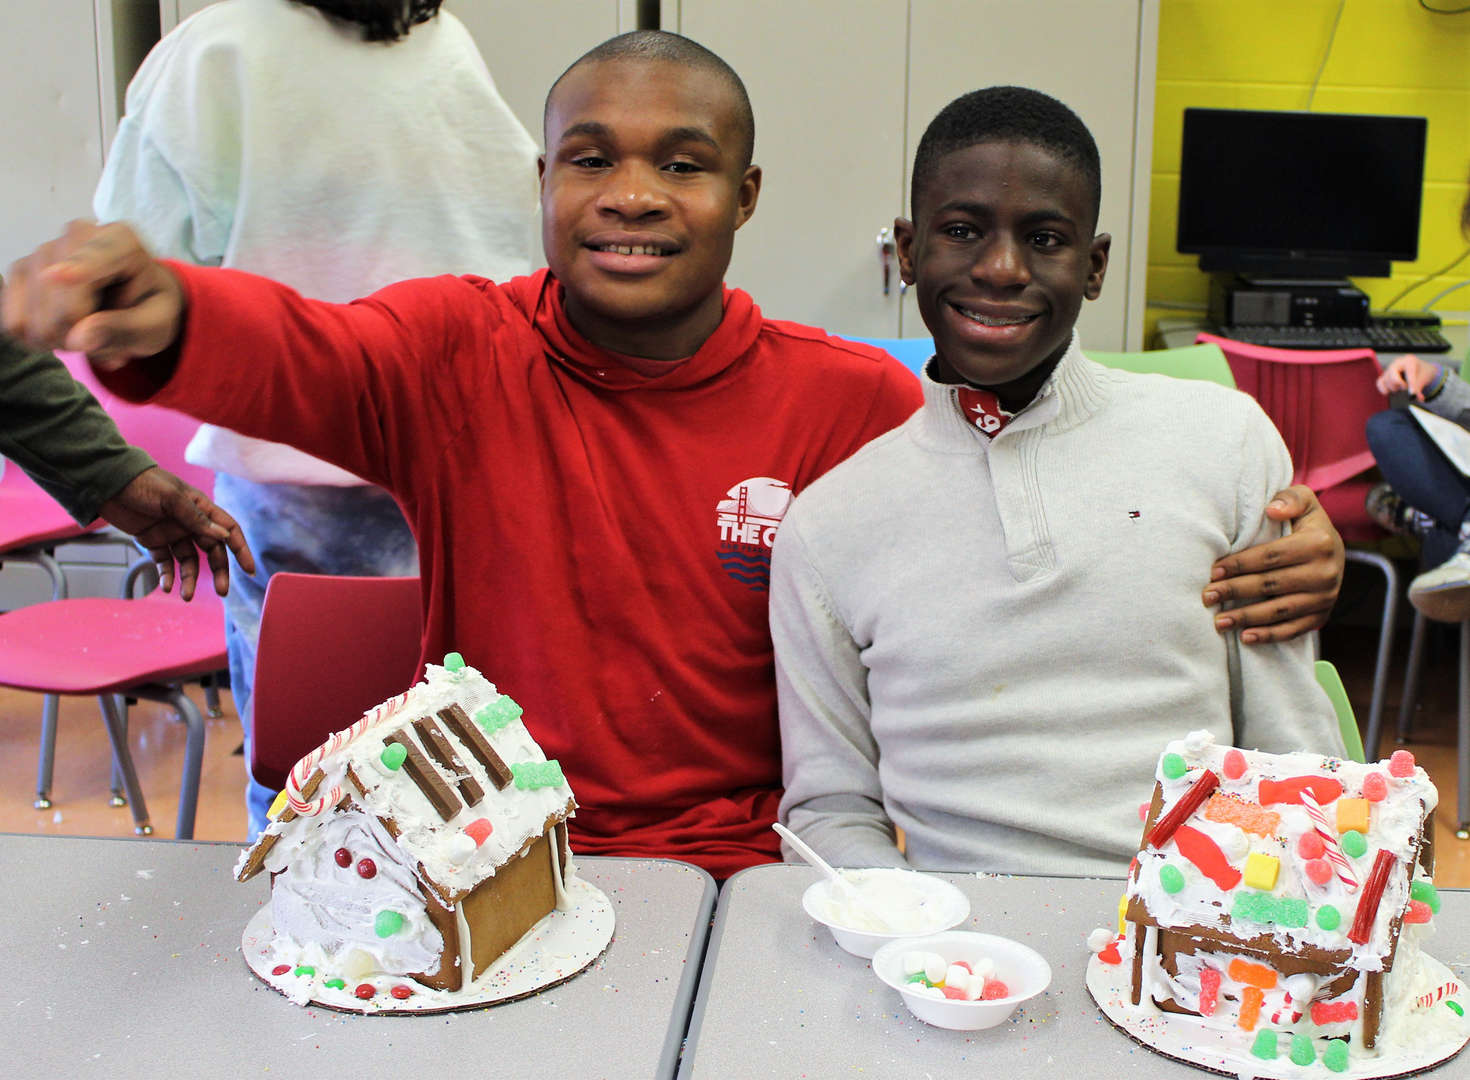 Two male students show off their decorated gingerbread houses.